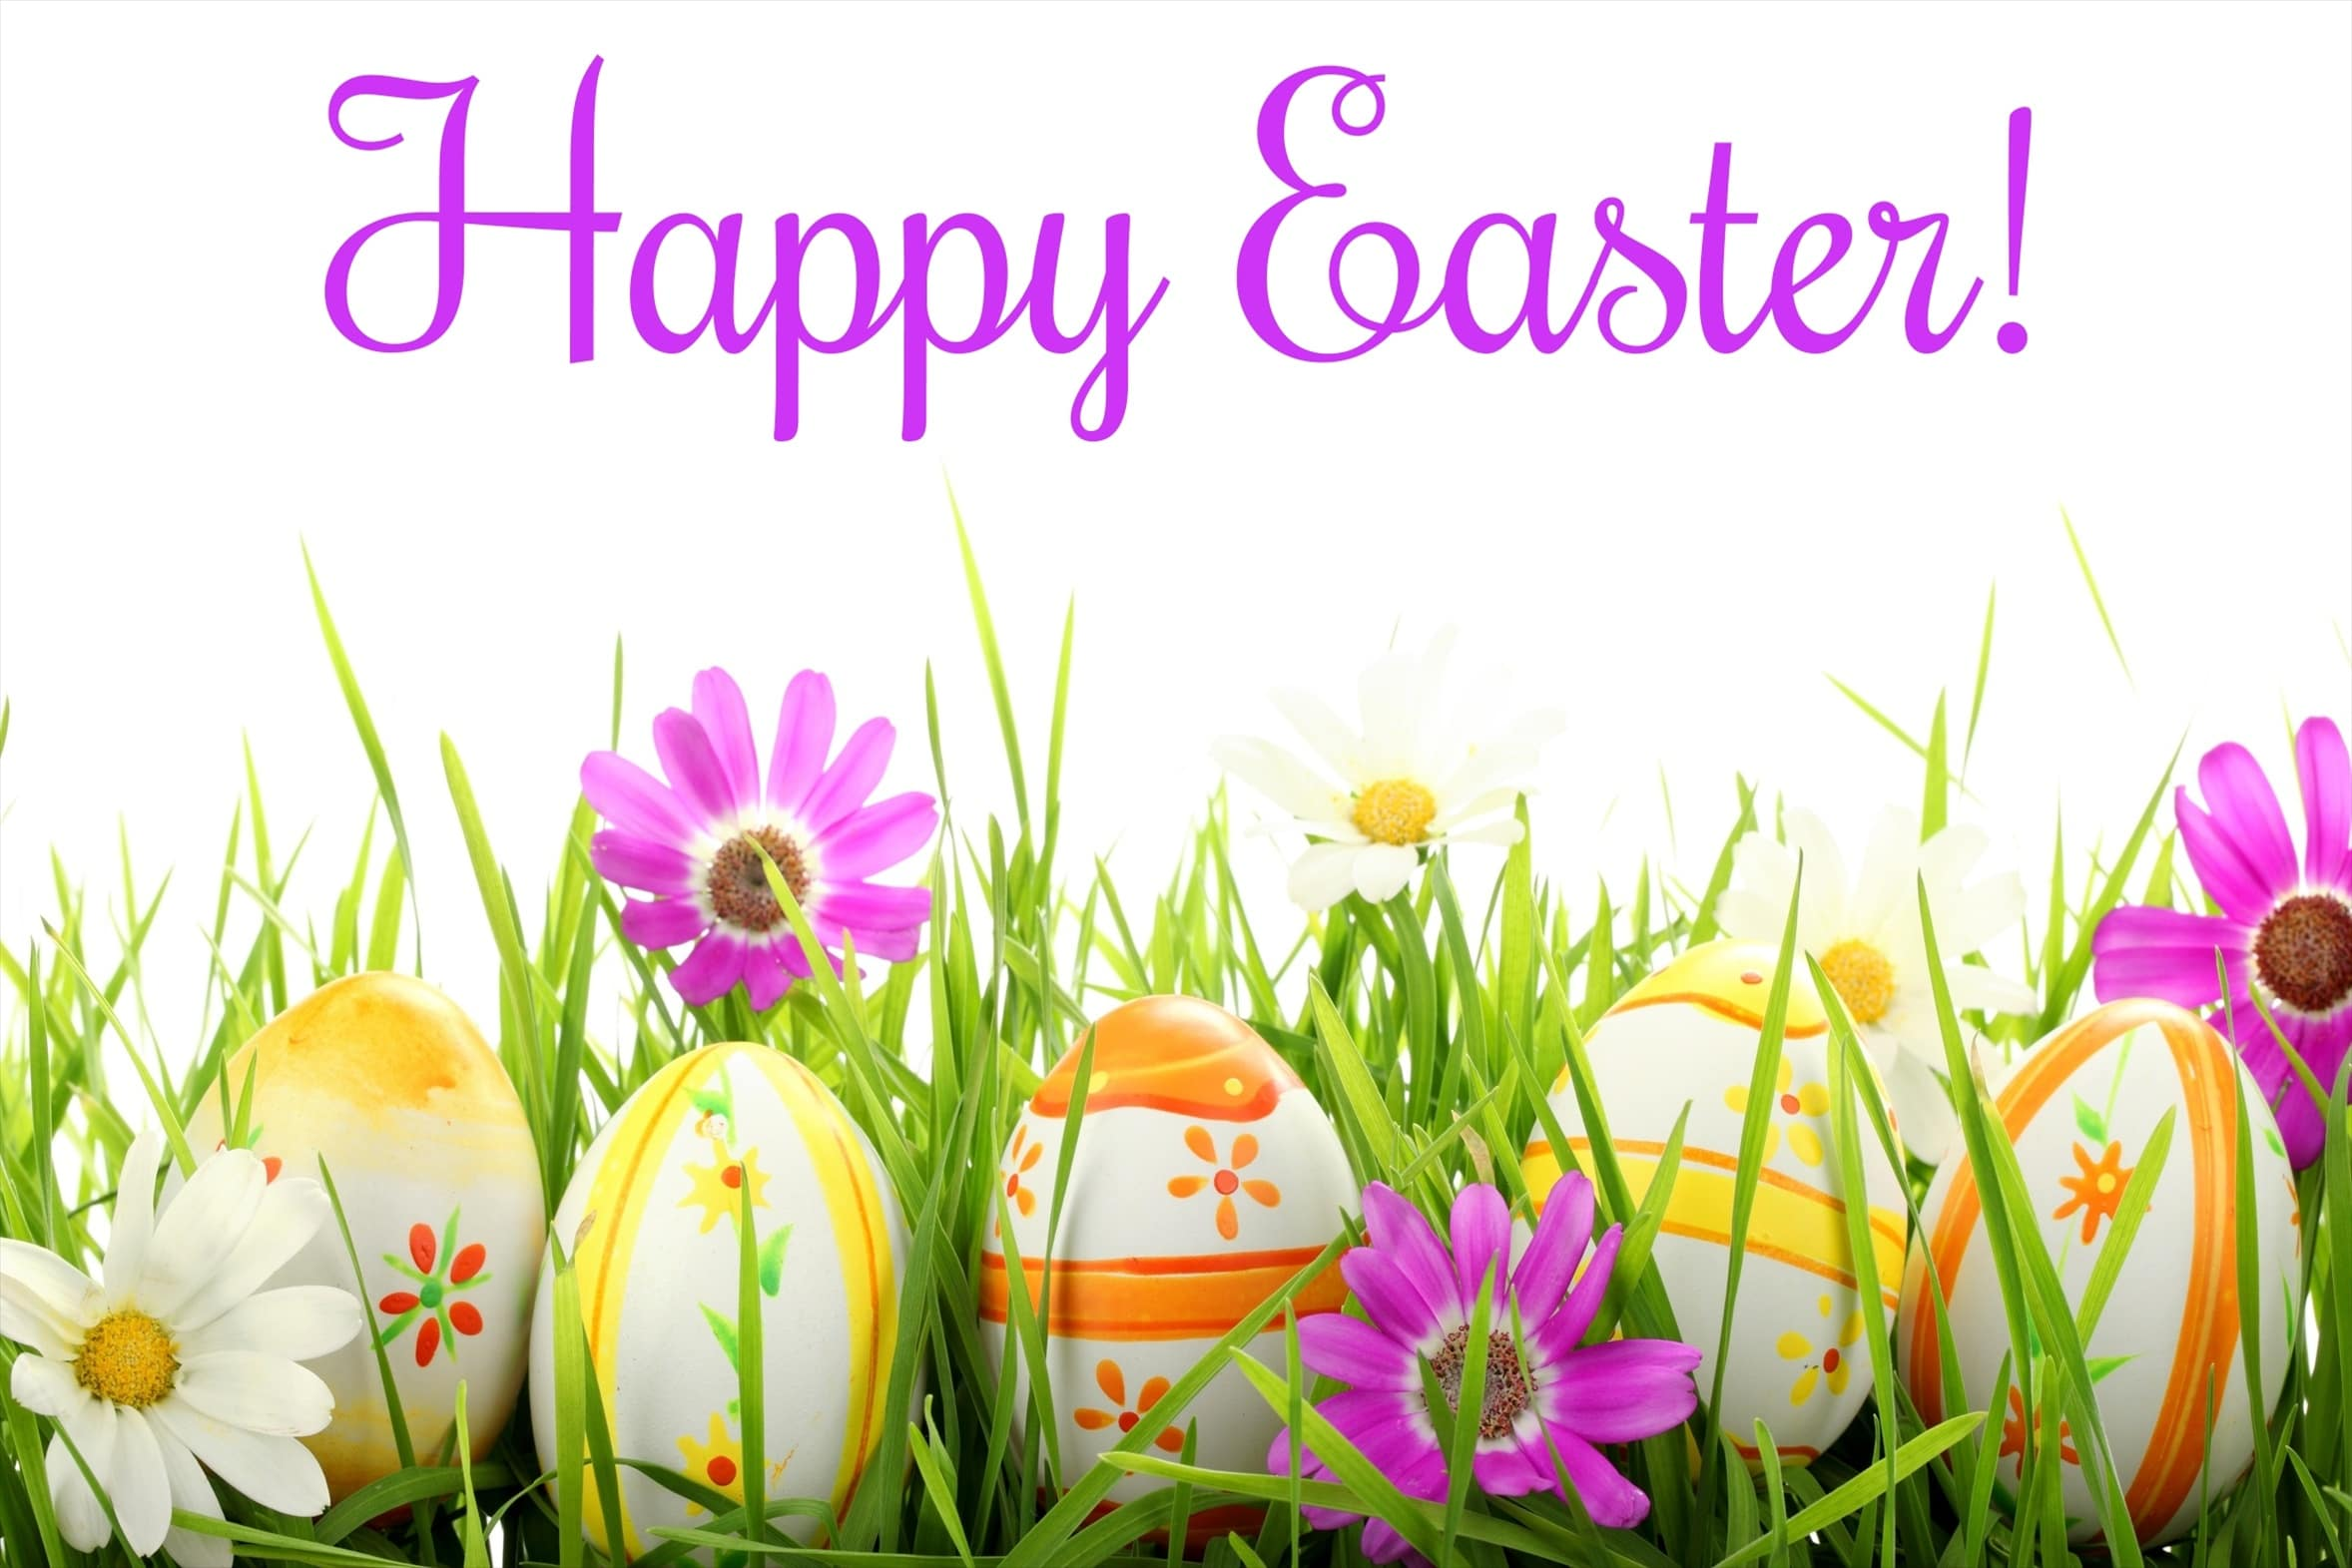 Online Happy Easter 2017 Wishes